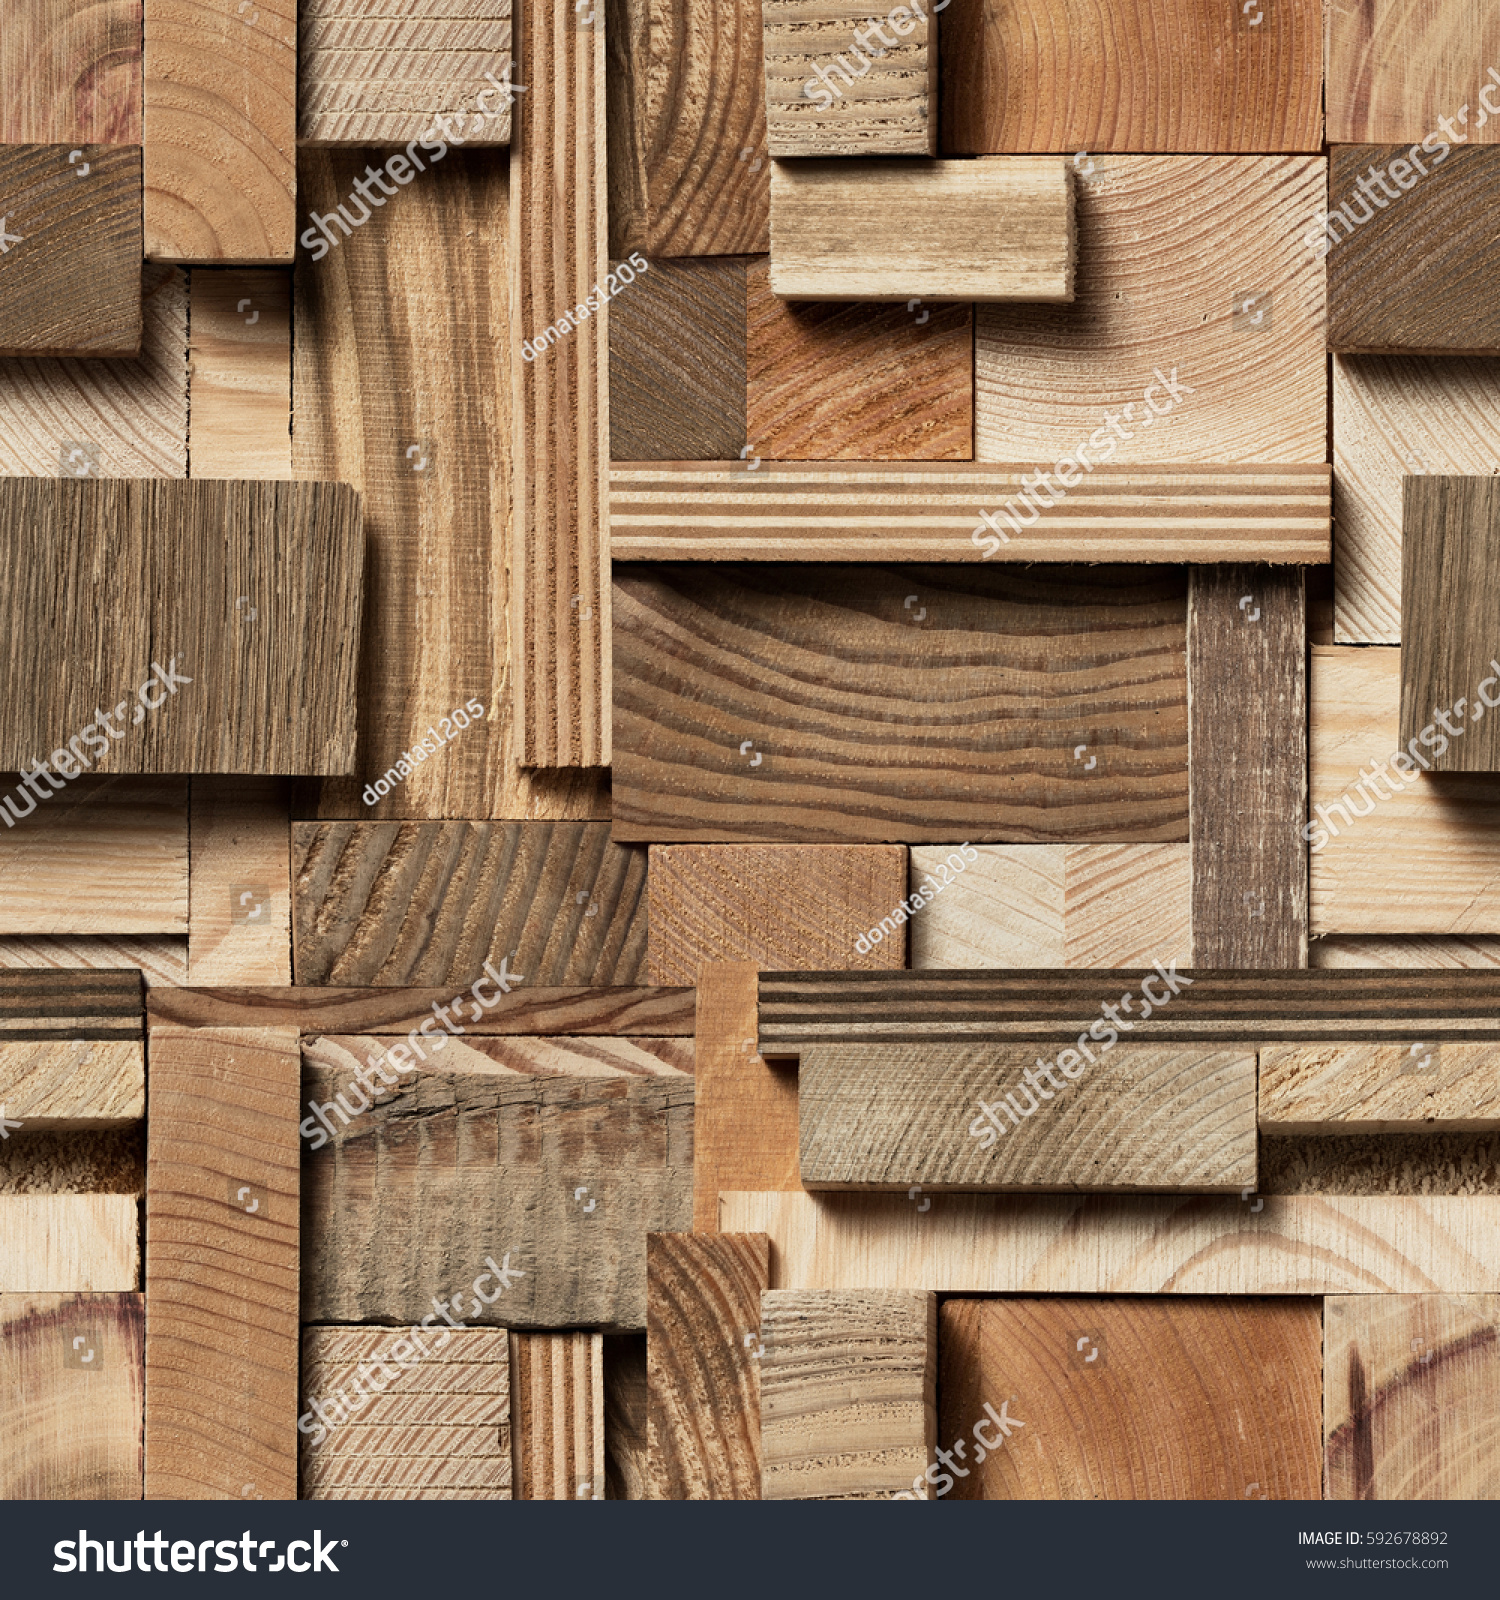 Seamless Texture Wooden Blocks Collage Background Stock